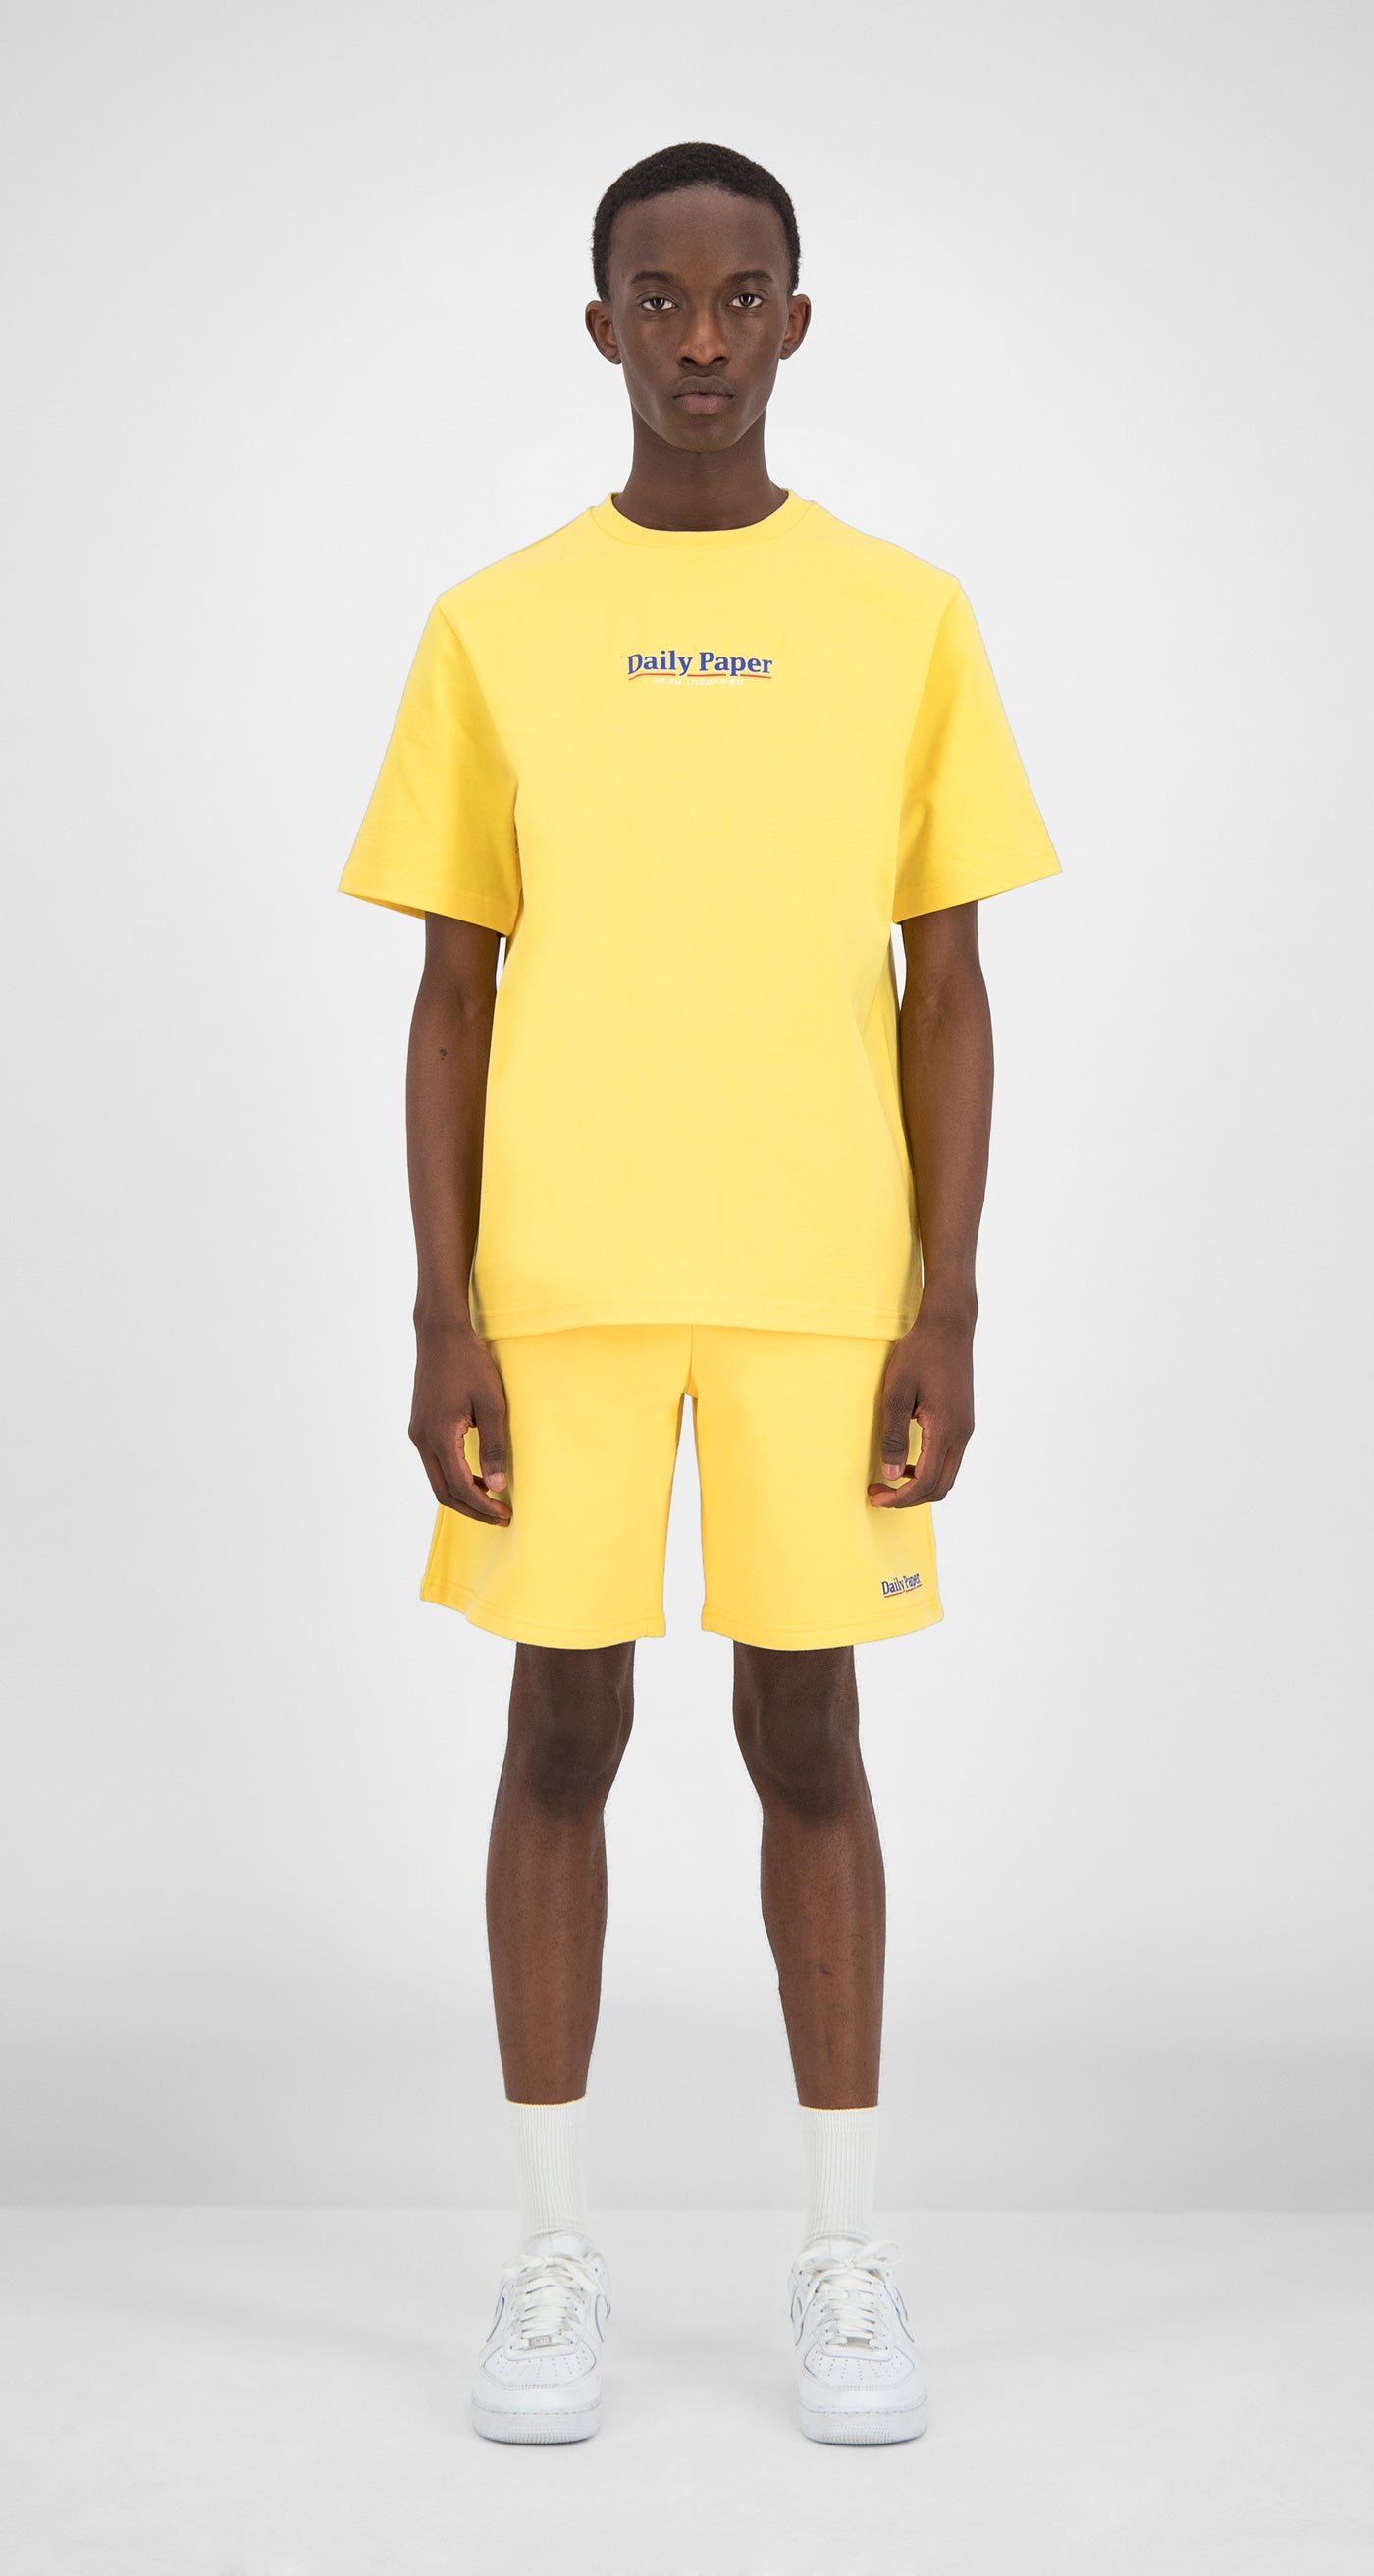 Daily Paper - Yellow Essential T-Shirt Men